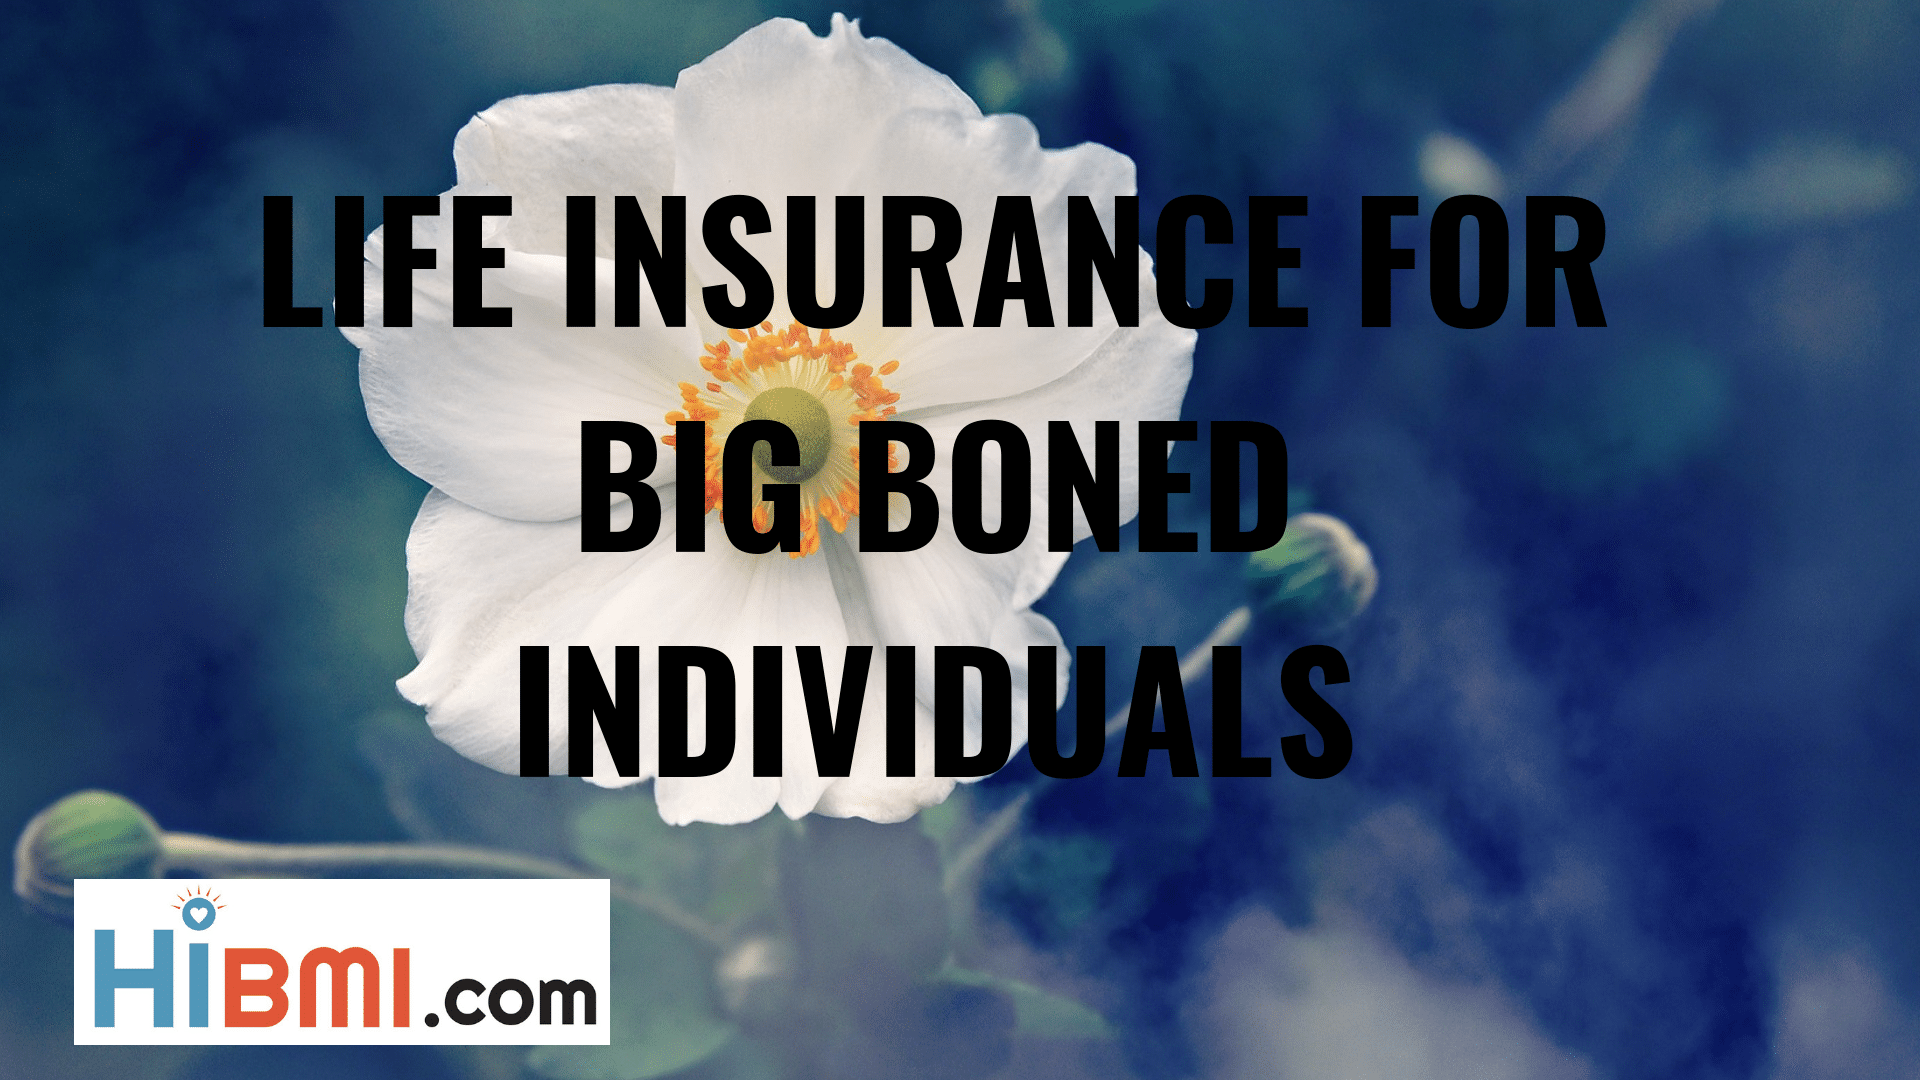 life insurance for muscular individuals, life insurance for big boned people, term life insurance, whole life insurance